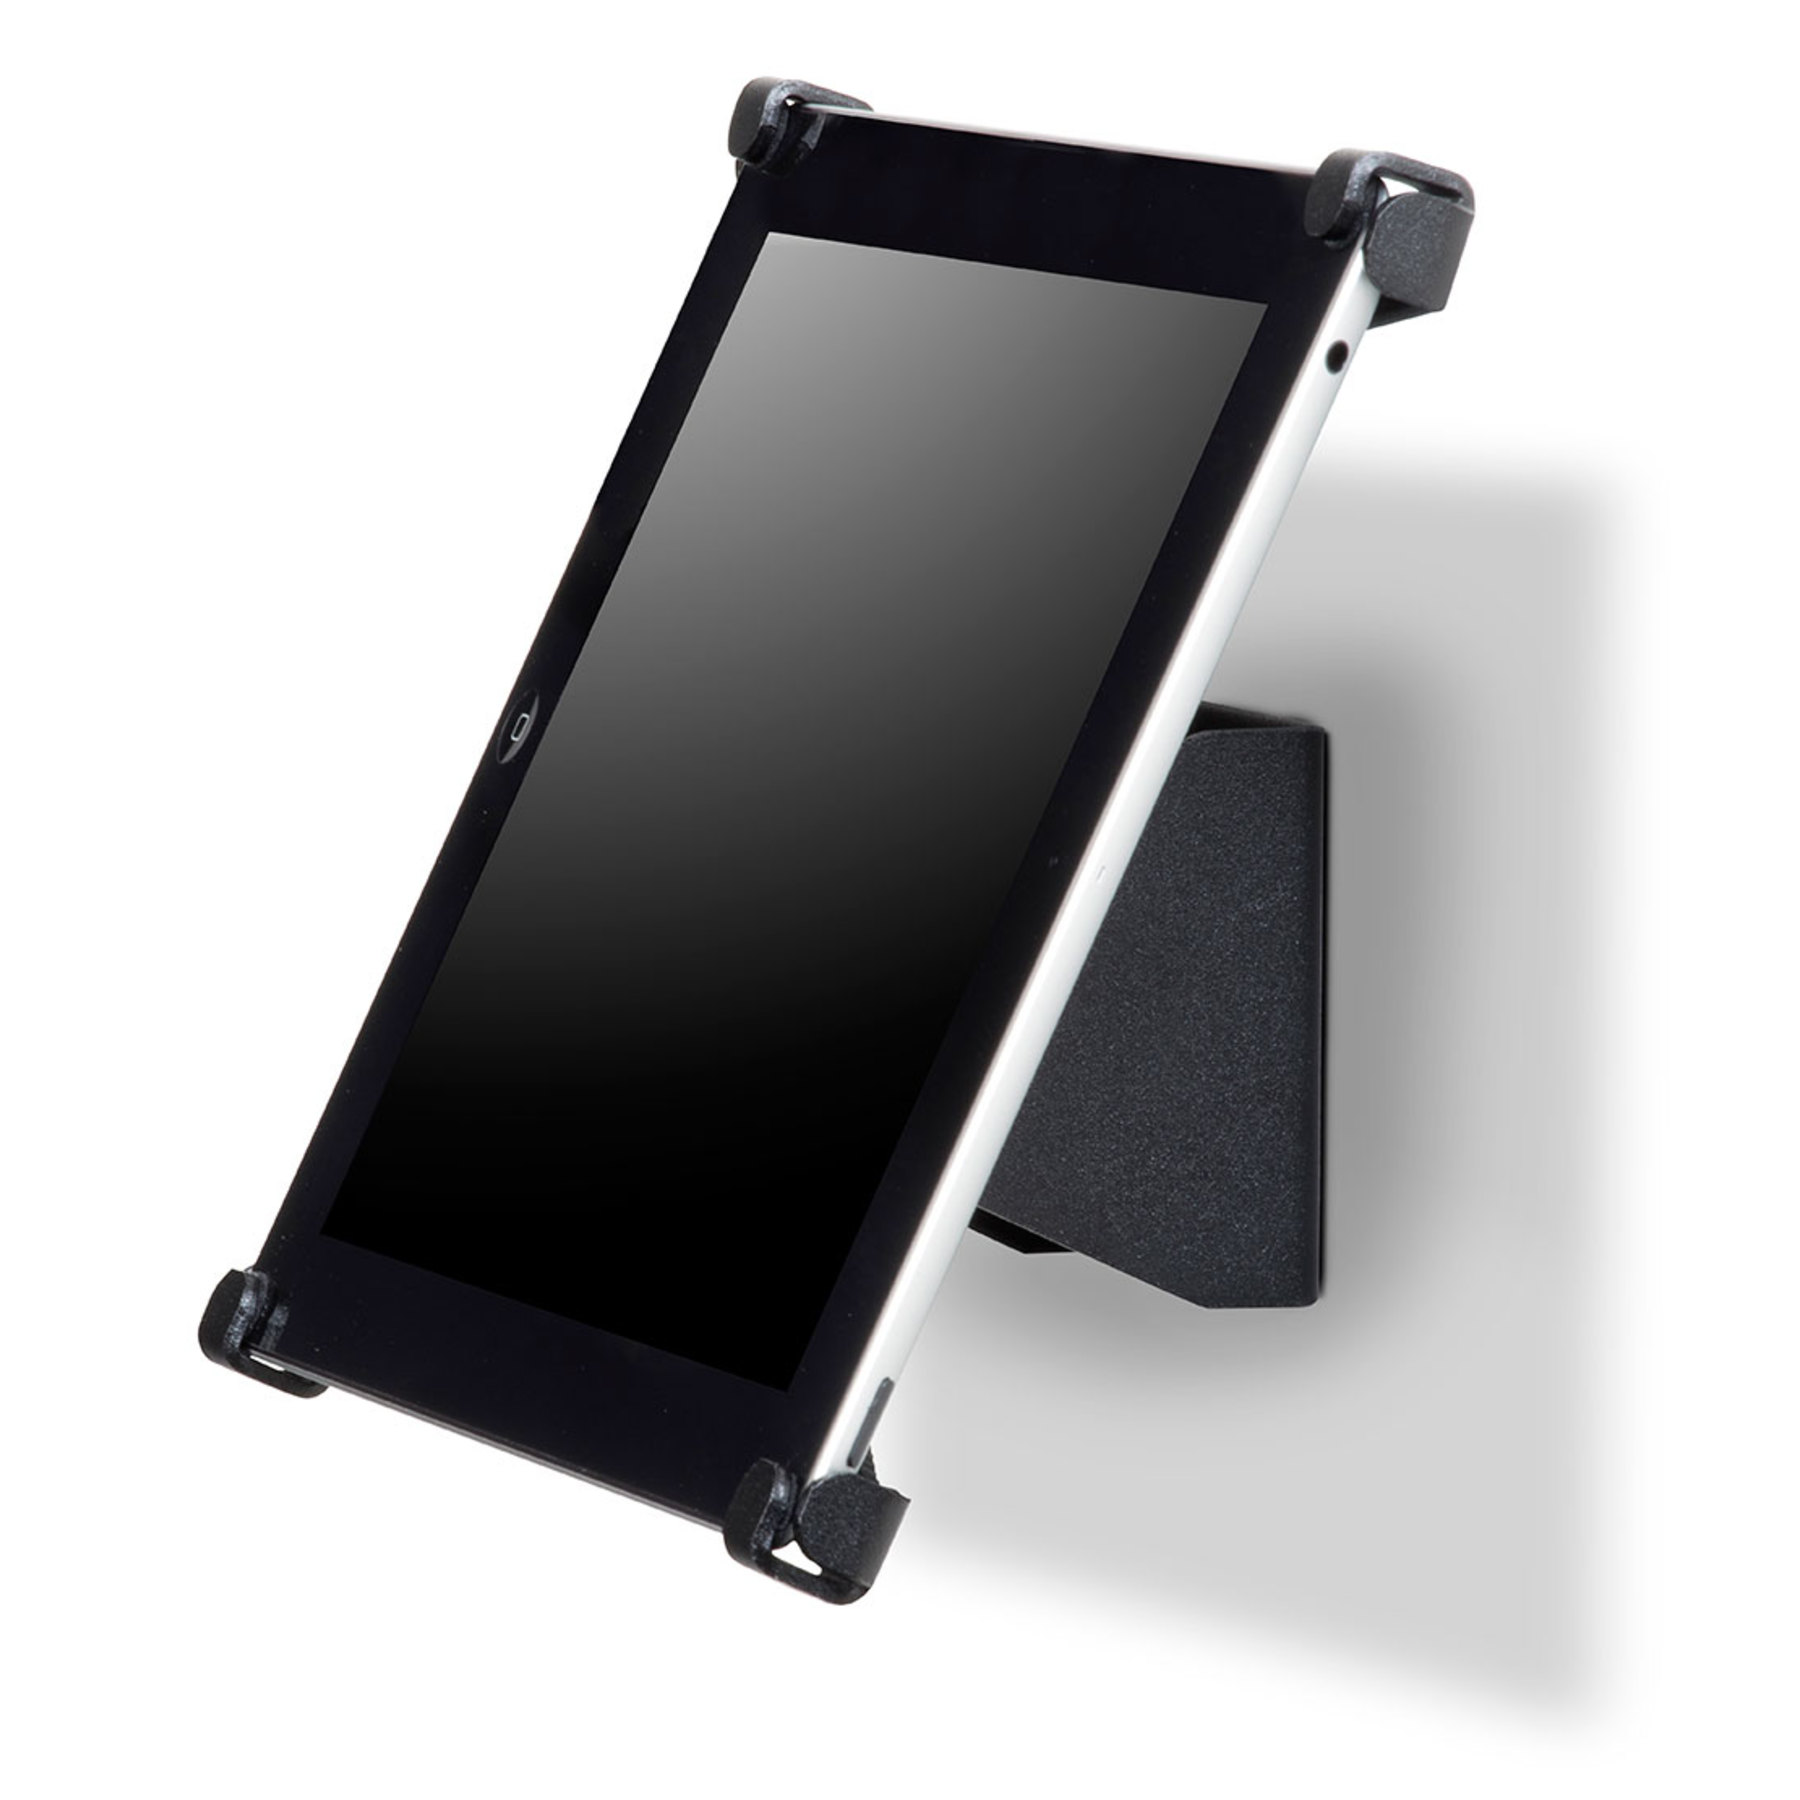 Spacepole X Frame Wall Mount For Tablets Cash Drawers